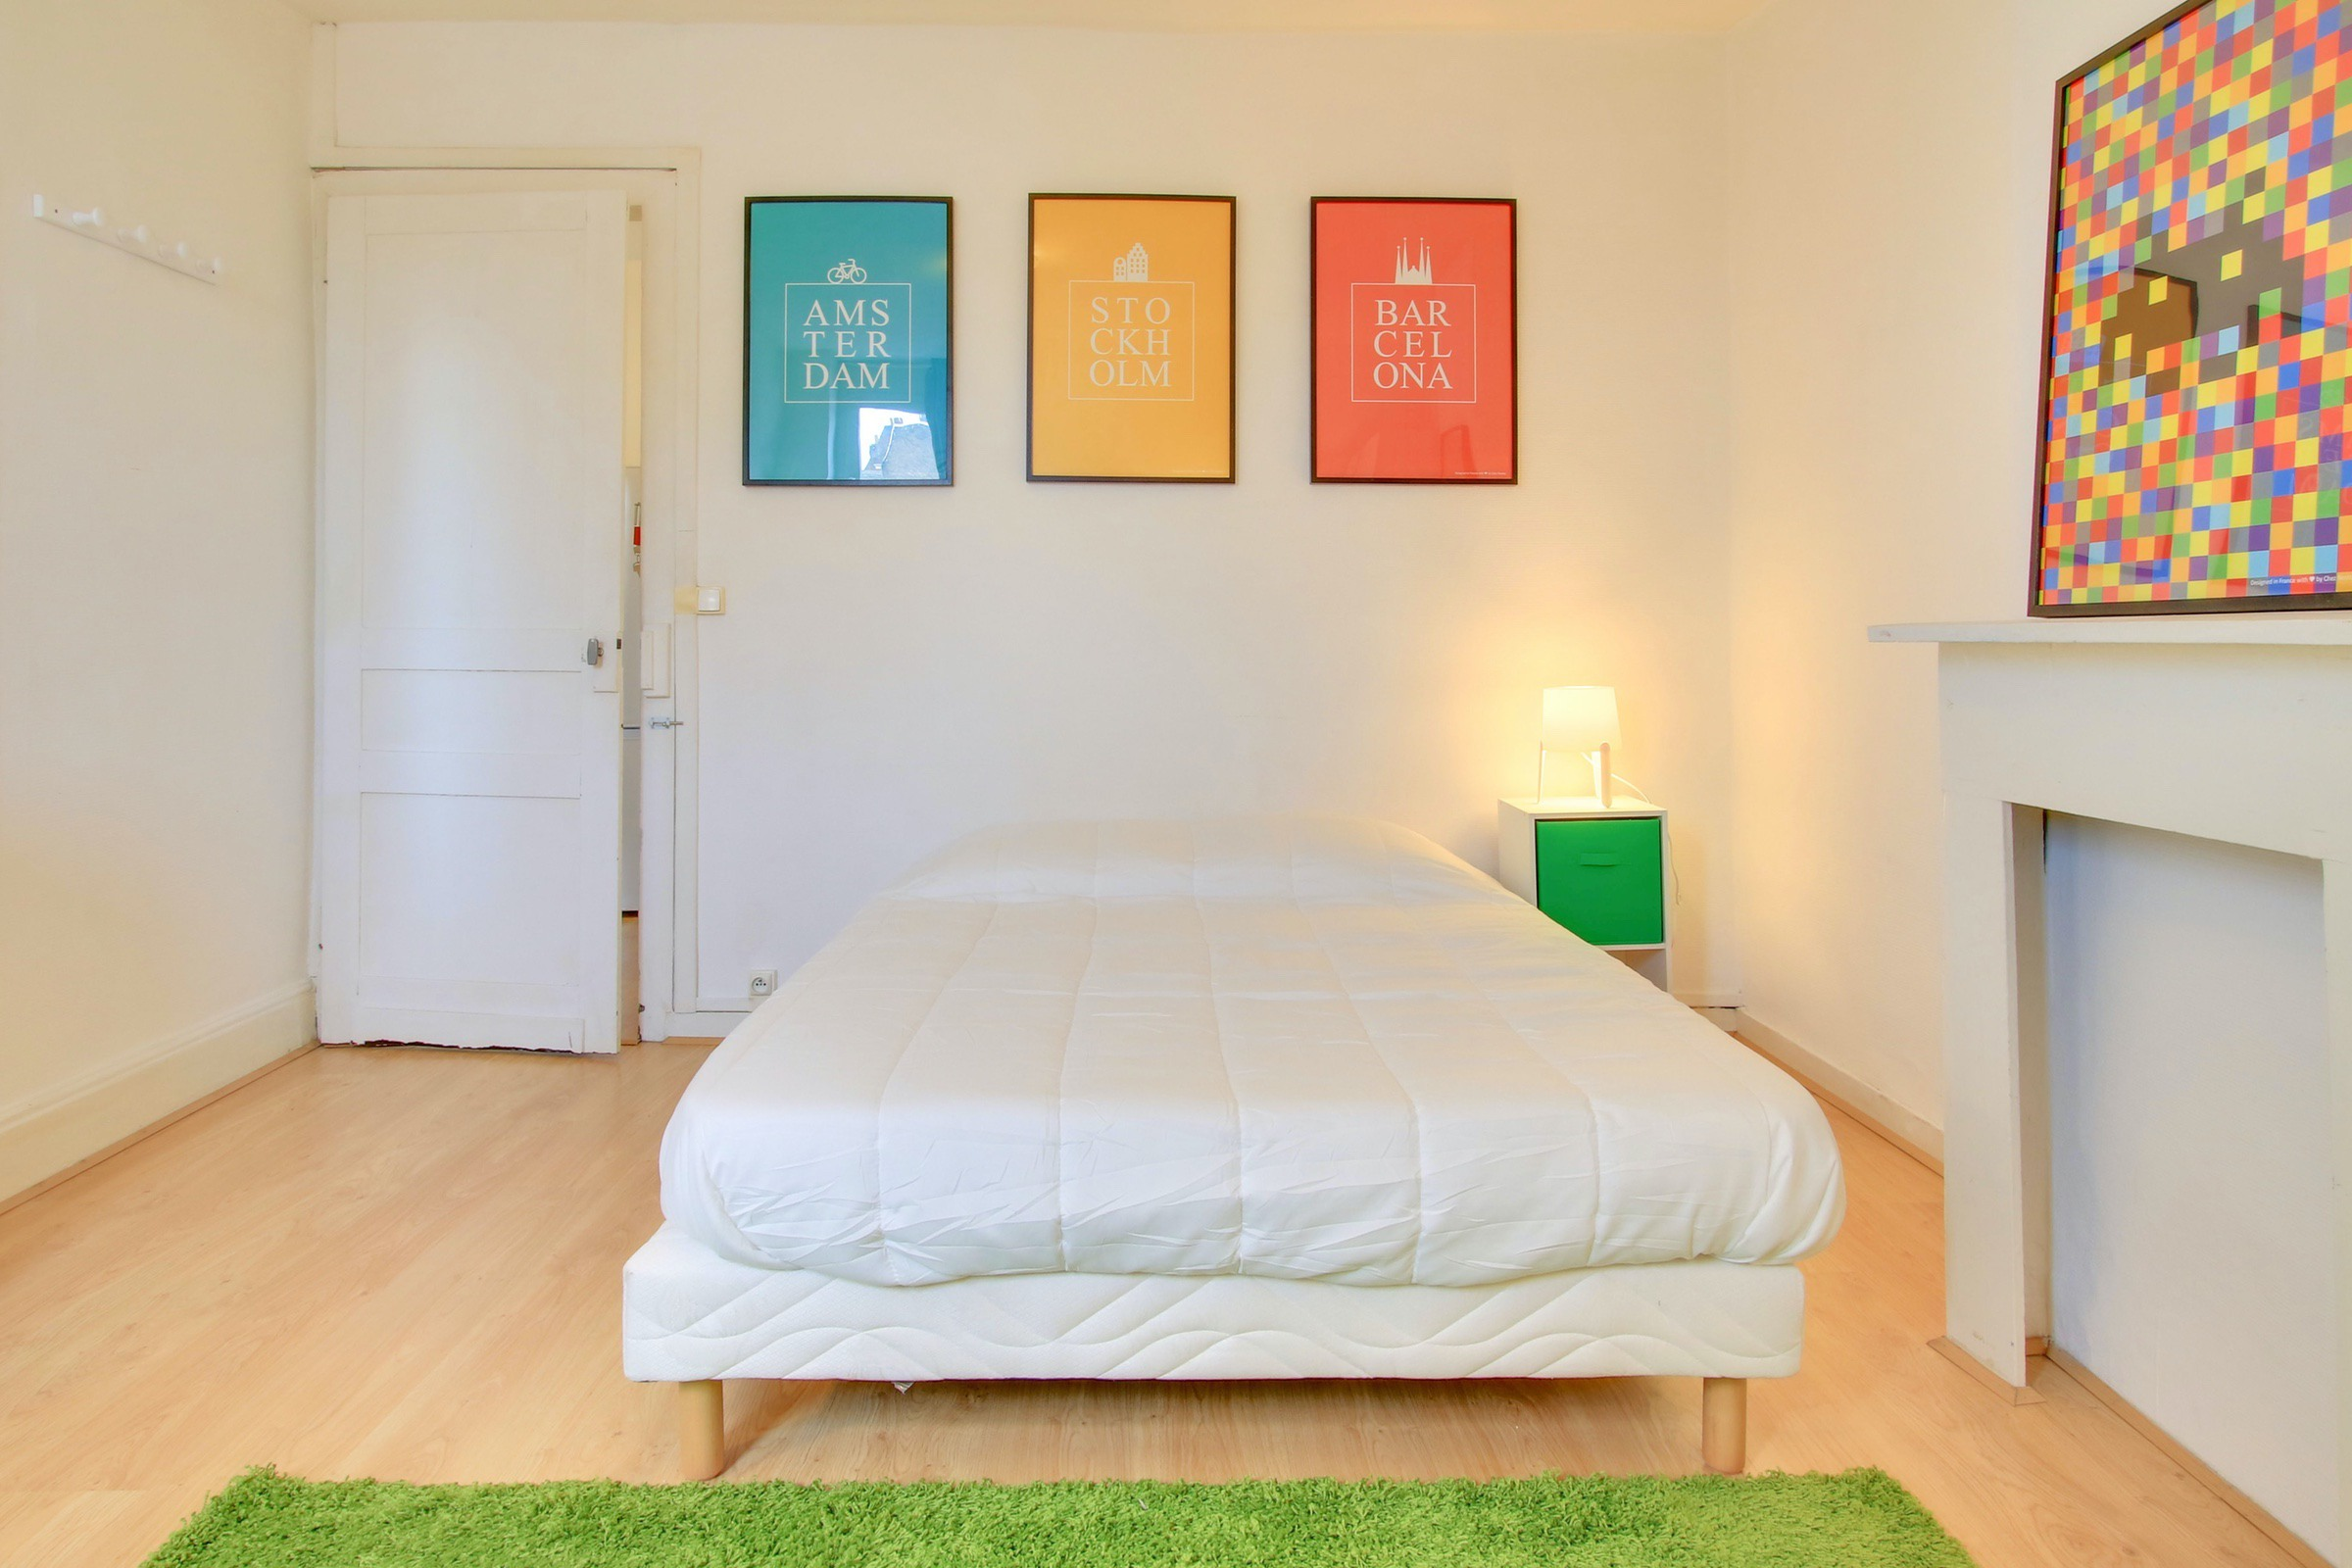 Colocation renovated, furnished - Post